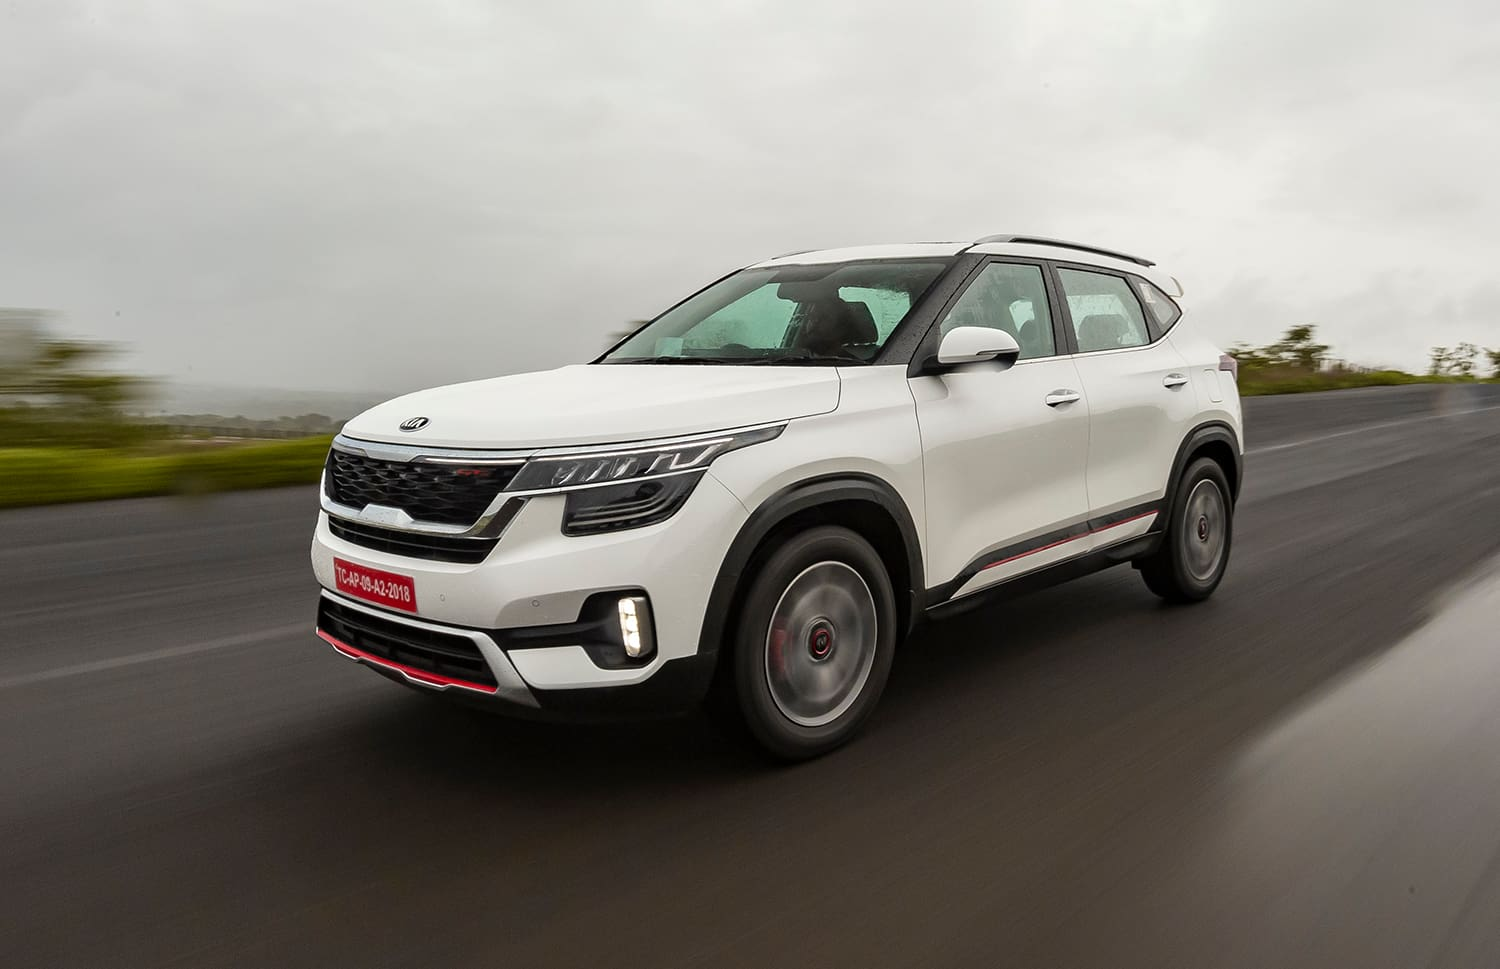 2019 Kia Seltos First Drive Review: Diesel & Petrol